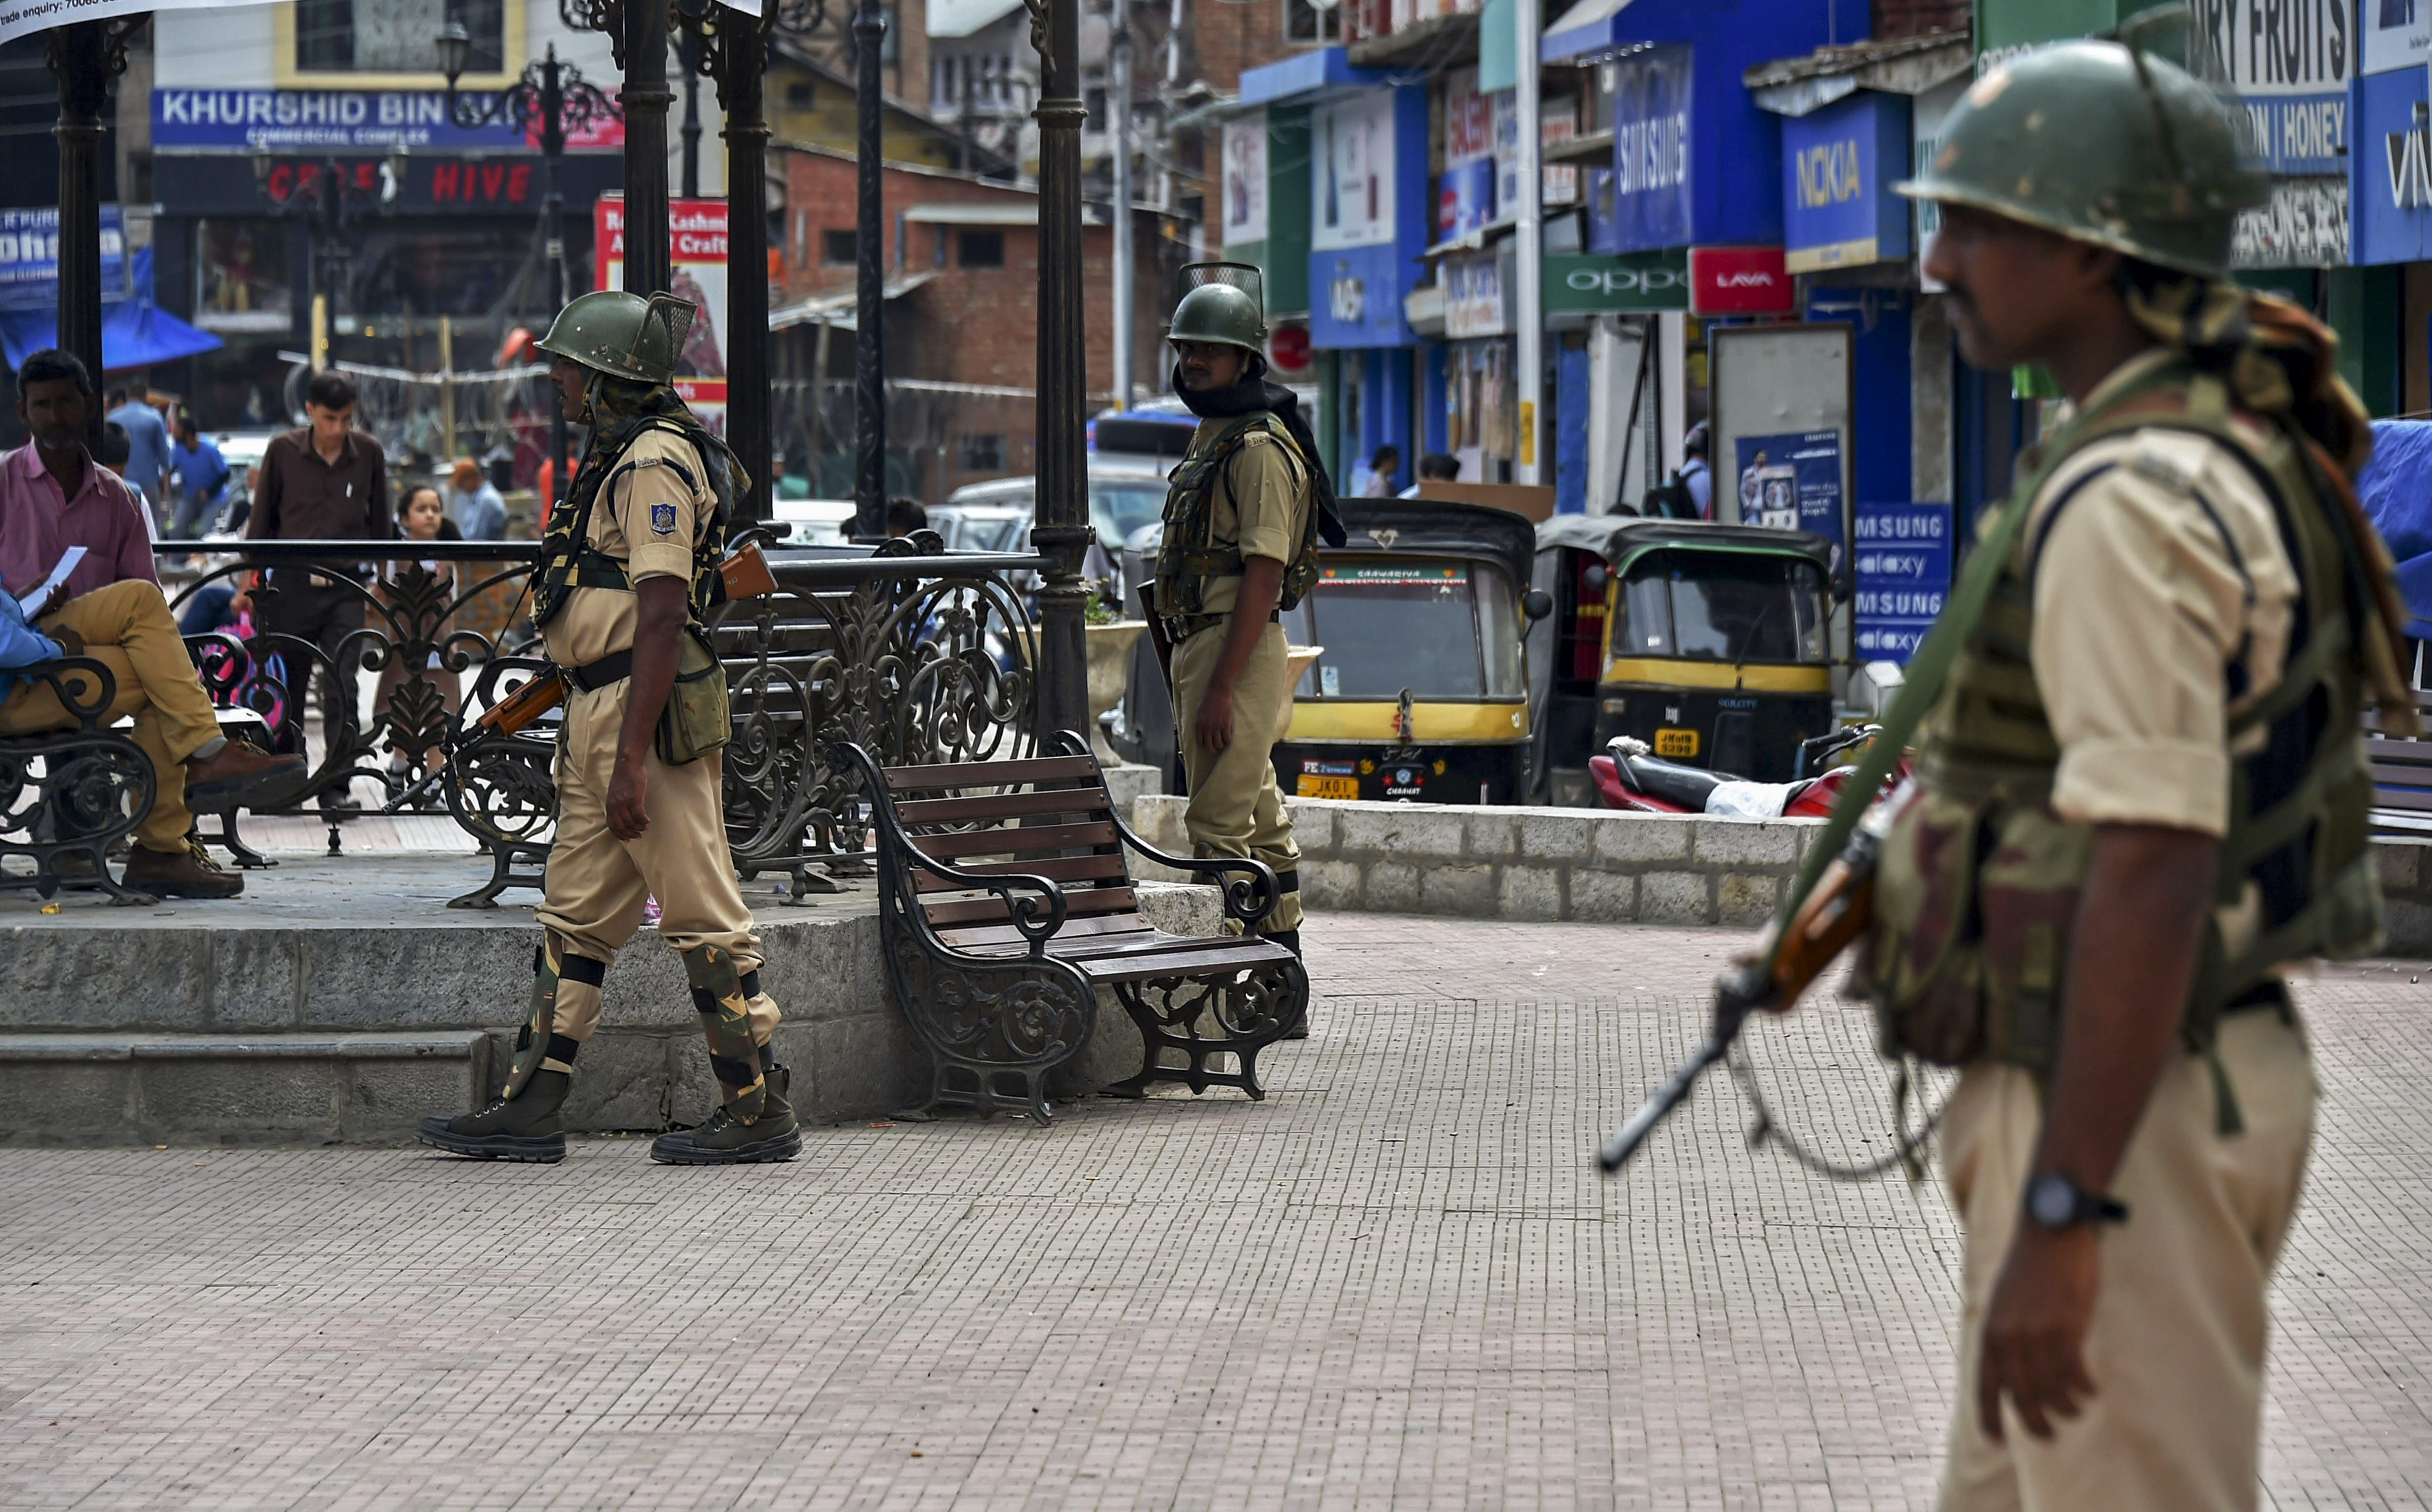 Pakistan ISI has sent JeM terrorists to attack security forces in J&K: Intel report